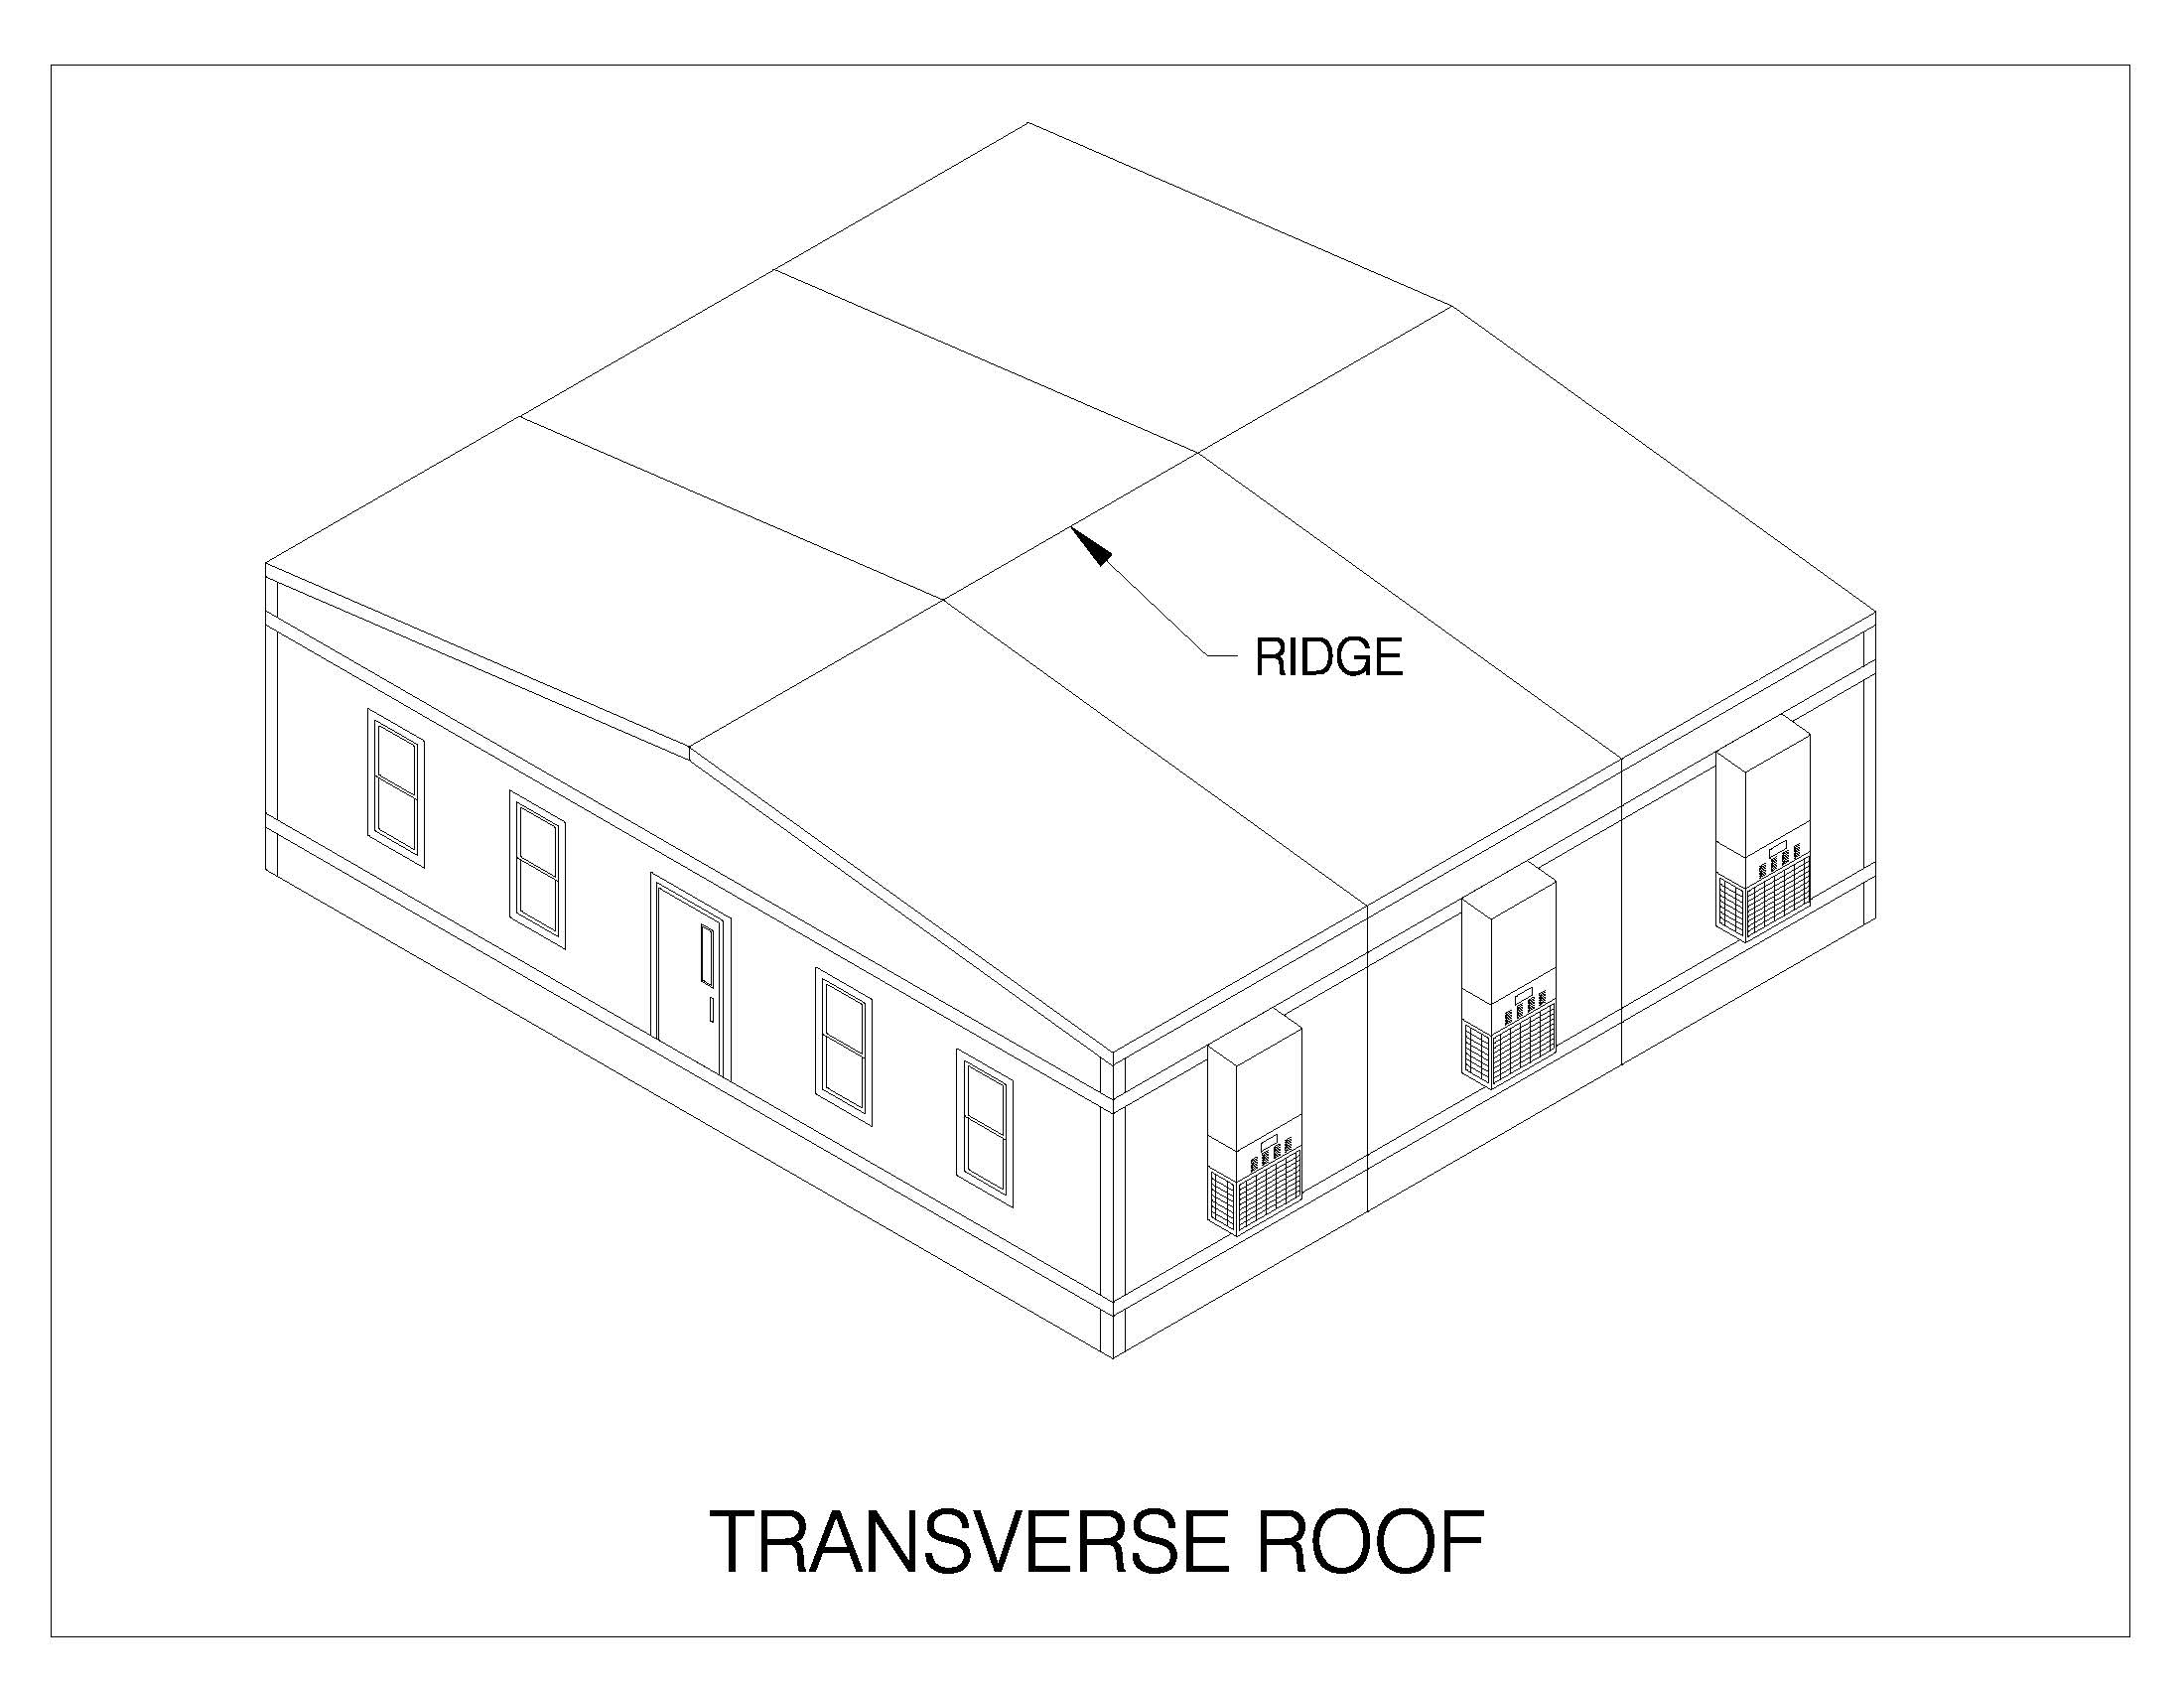 Exterior-Roof-Transverse Roof